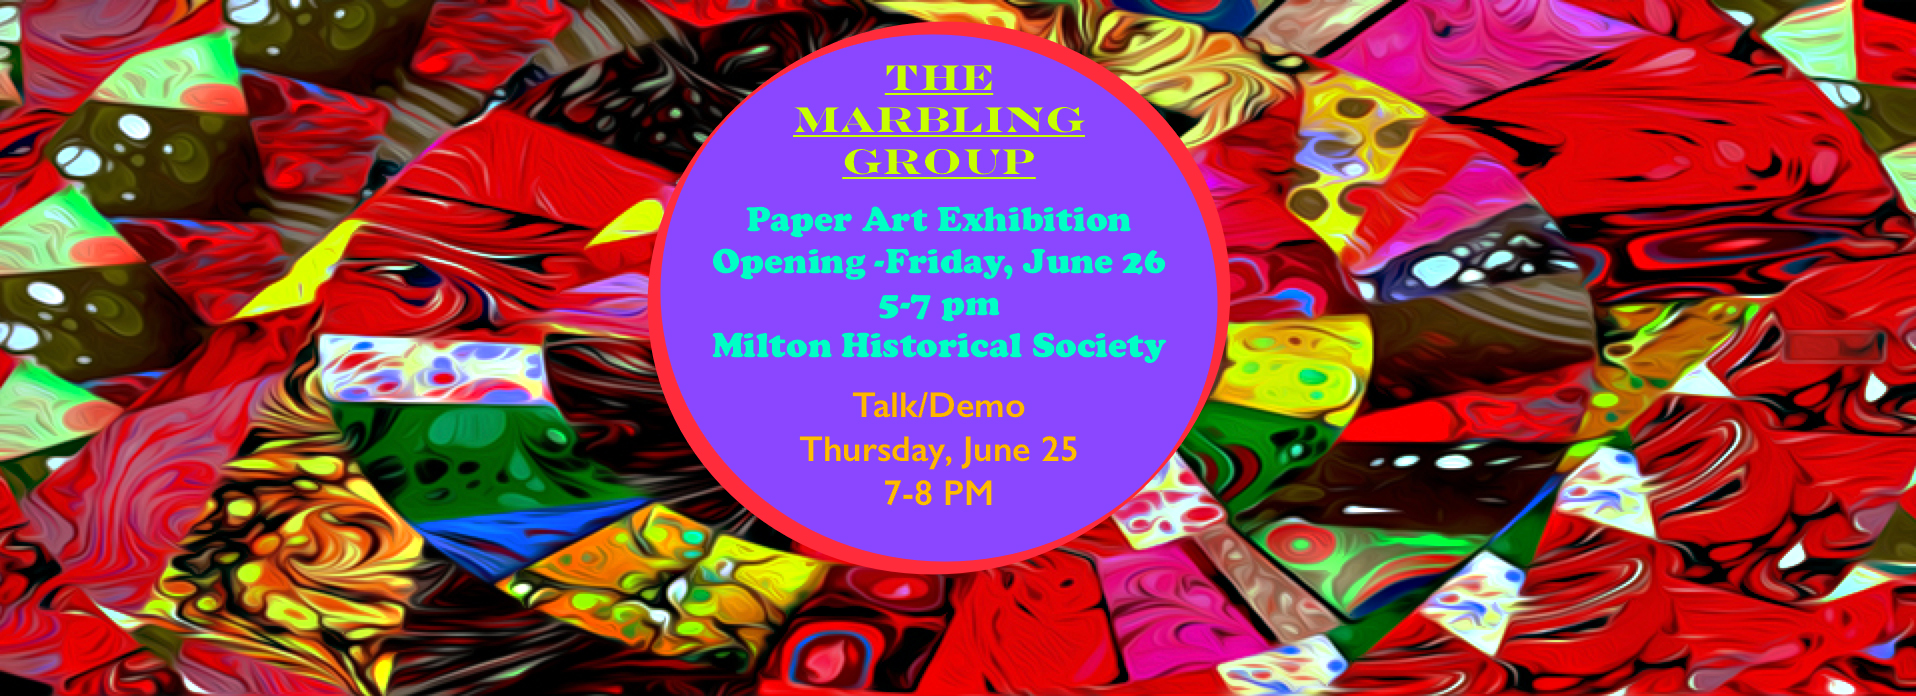 THE MARBLING GROUP – PAPER ART EXHIBITION – TALK & DEMO -MHS